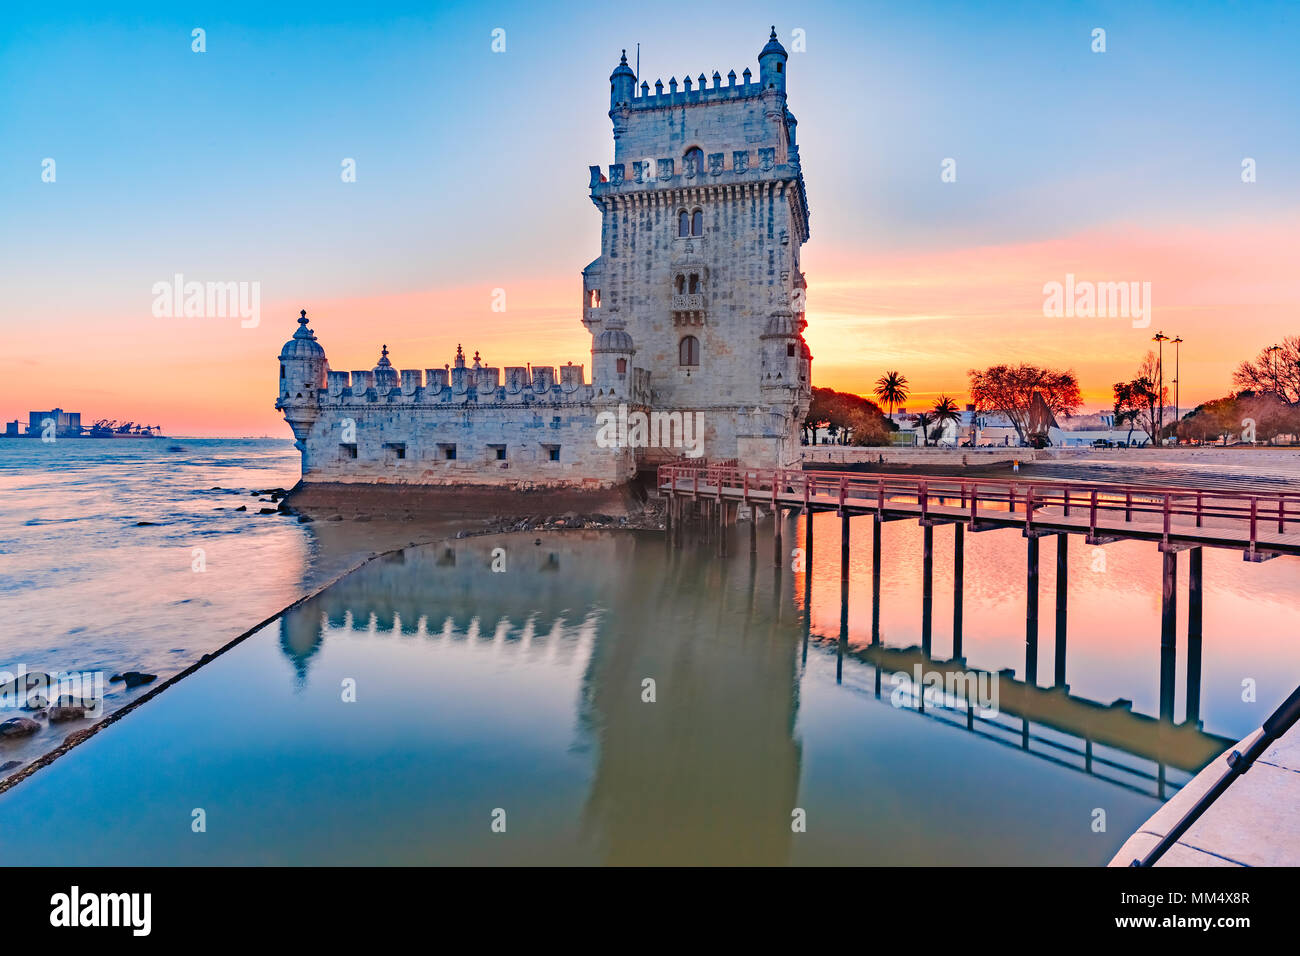 Belem Tower in Lisbon at sunset, Portugal - Stock Image